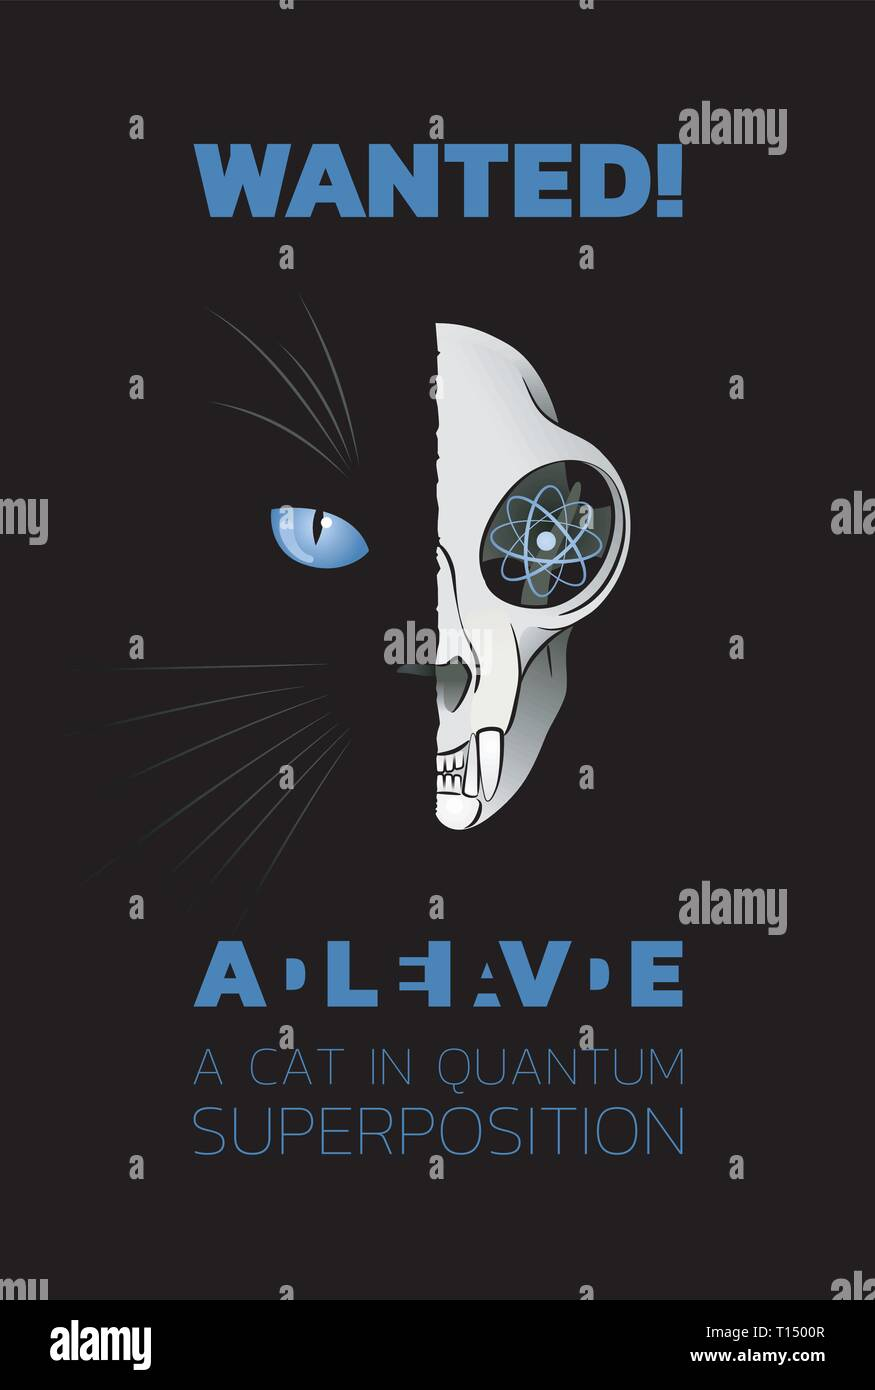 Wanted Dead-And-Alive A Cat In Quantum Superposition - Stock Image